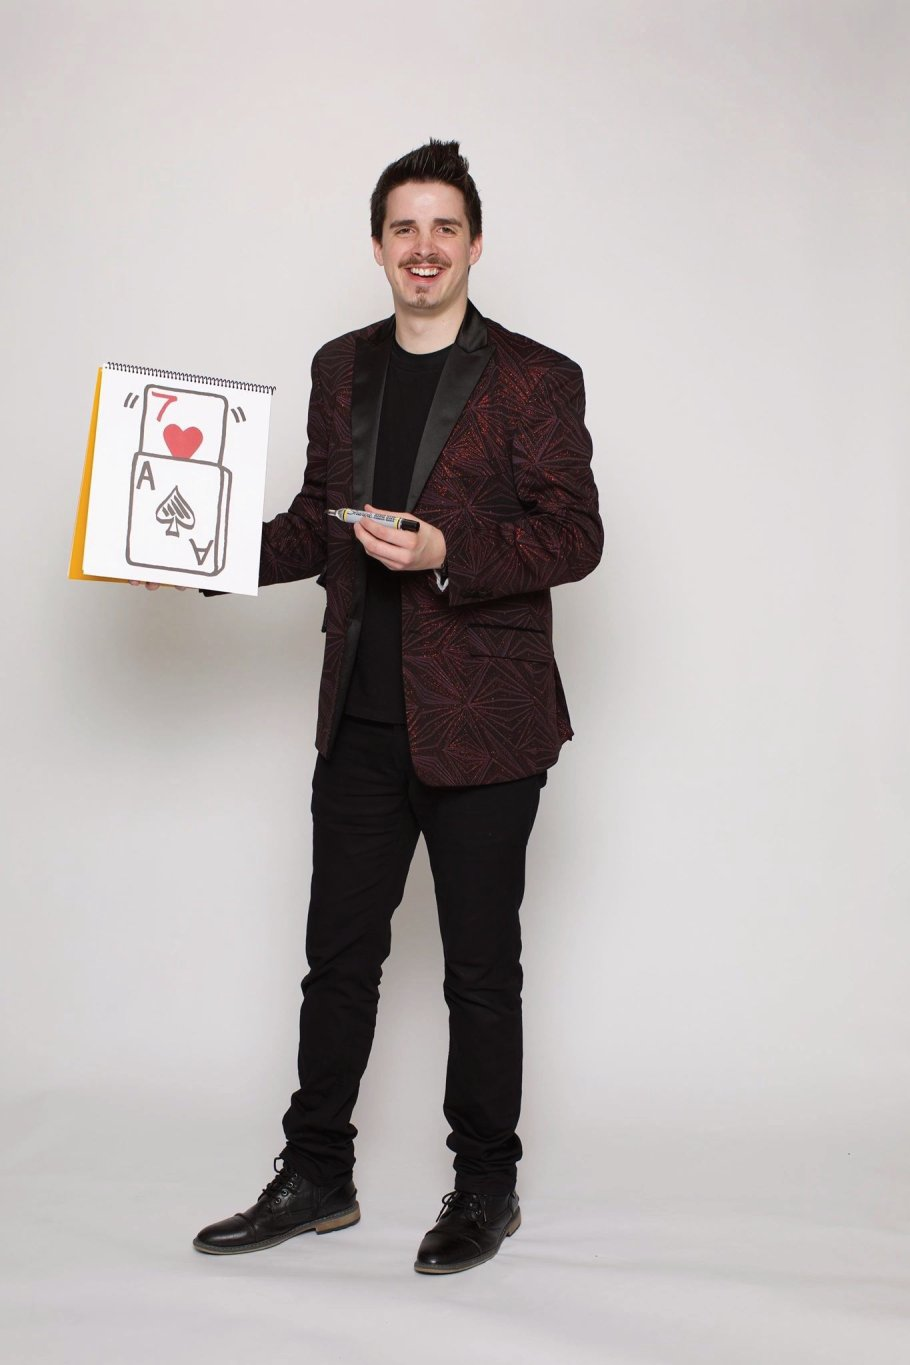 Searching For A Kids Birthday Party Magician in Fuquay Varina, North Carolina? Magicians Chris and Neal are for You.